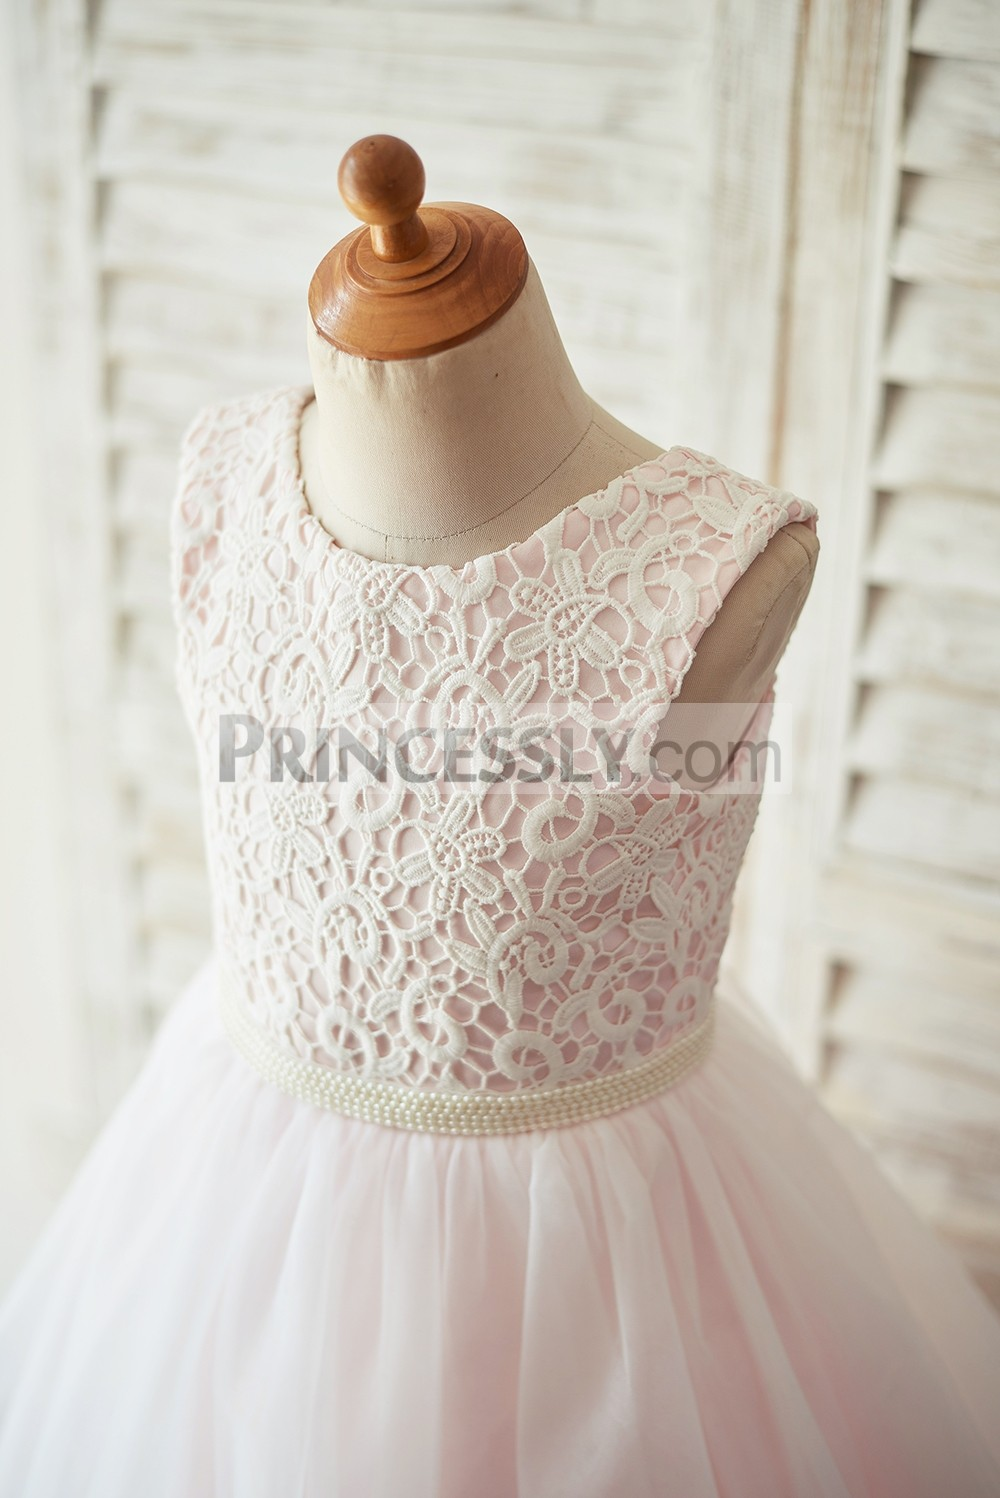 Ivory lace pink lining bodice in jewel neckline, sleeveless